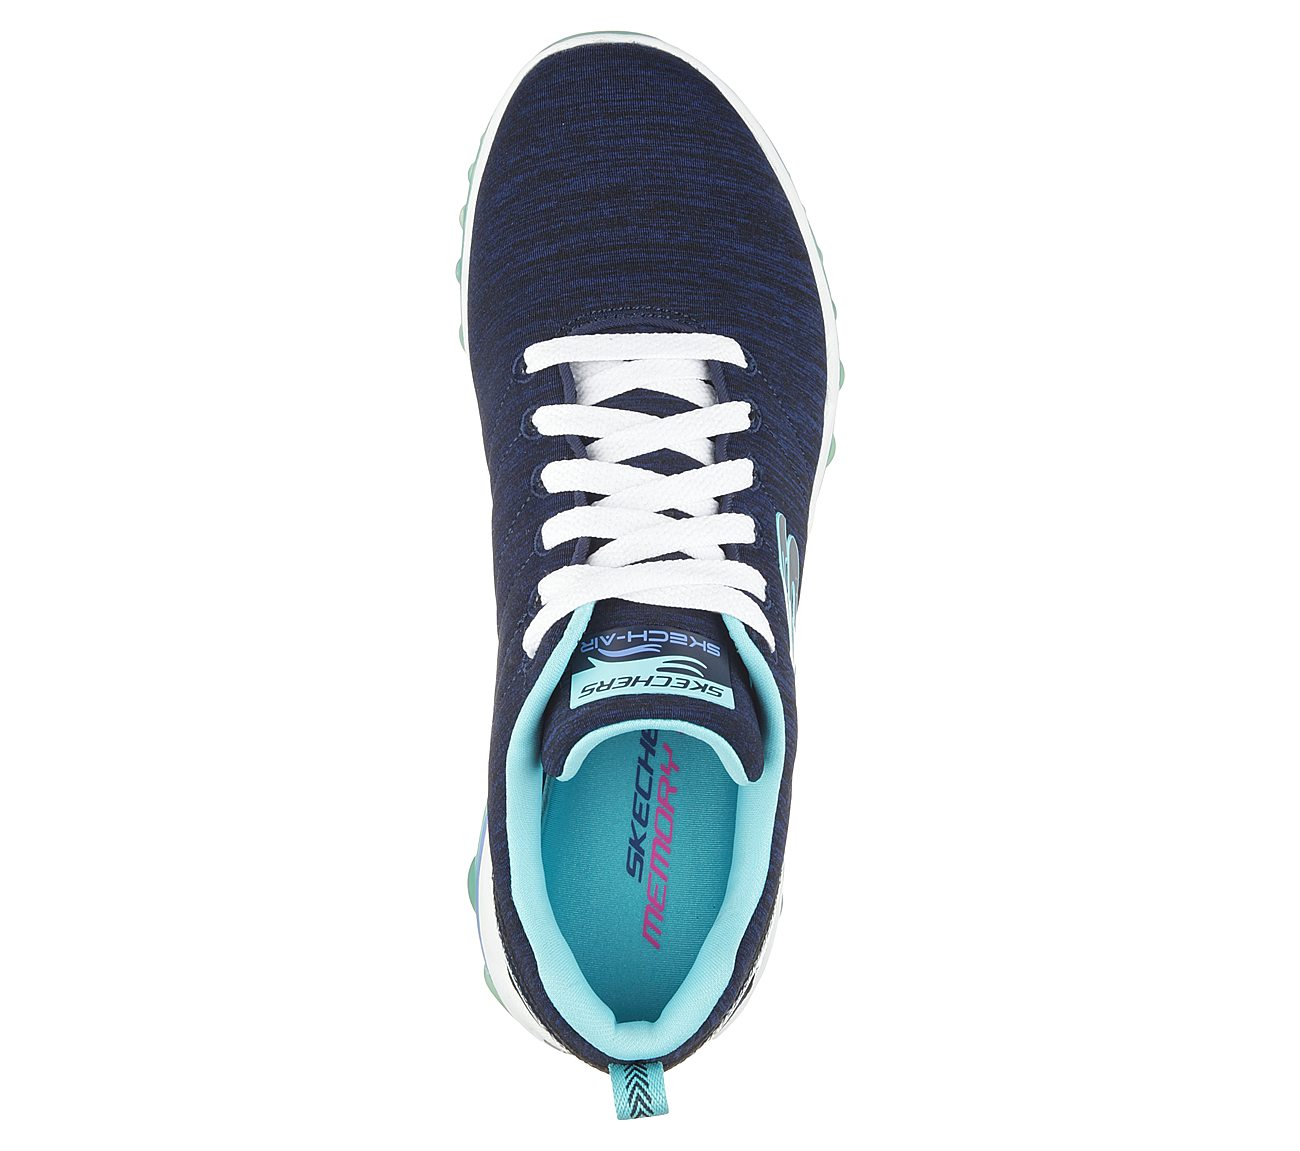 e62f1228d7 Buy SKECHERS Skech-Air 2.0 - Sweet Life Skech-Air Shoes only $80.00